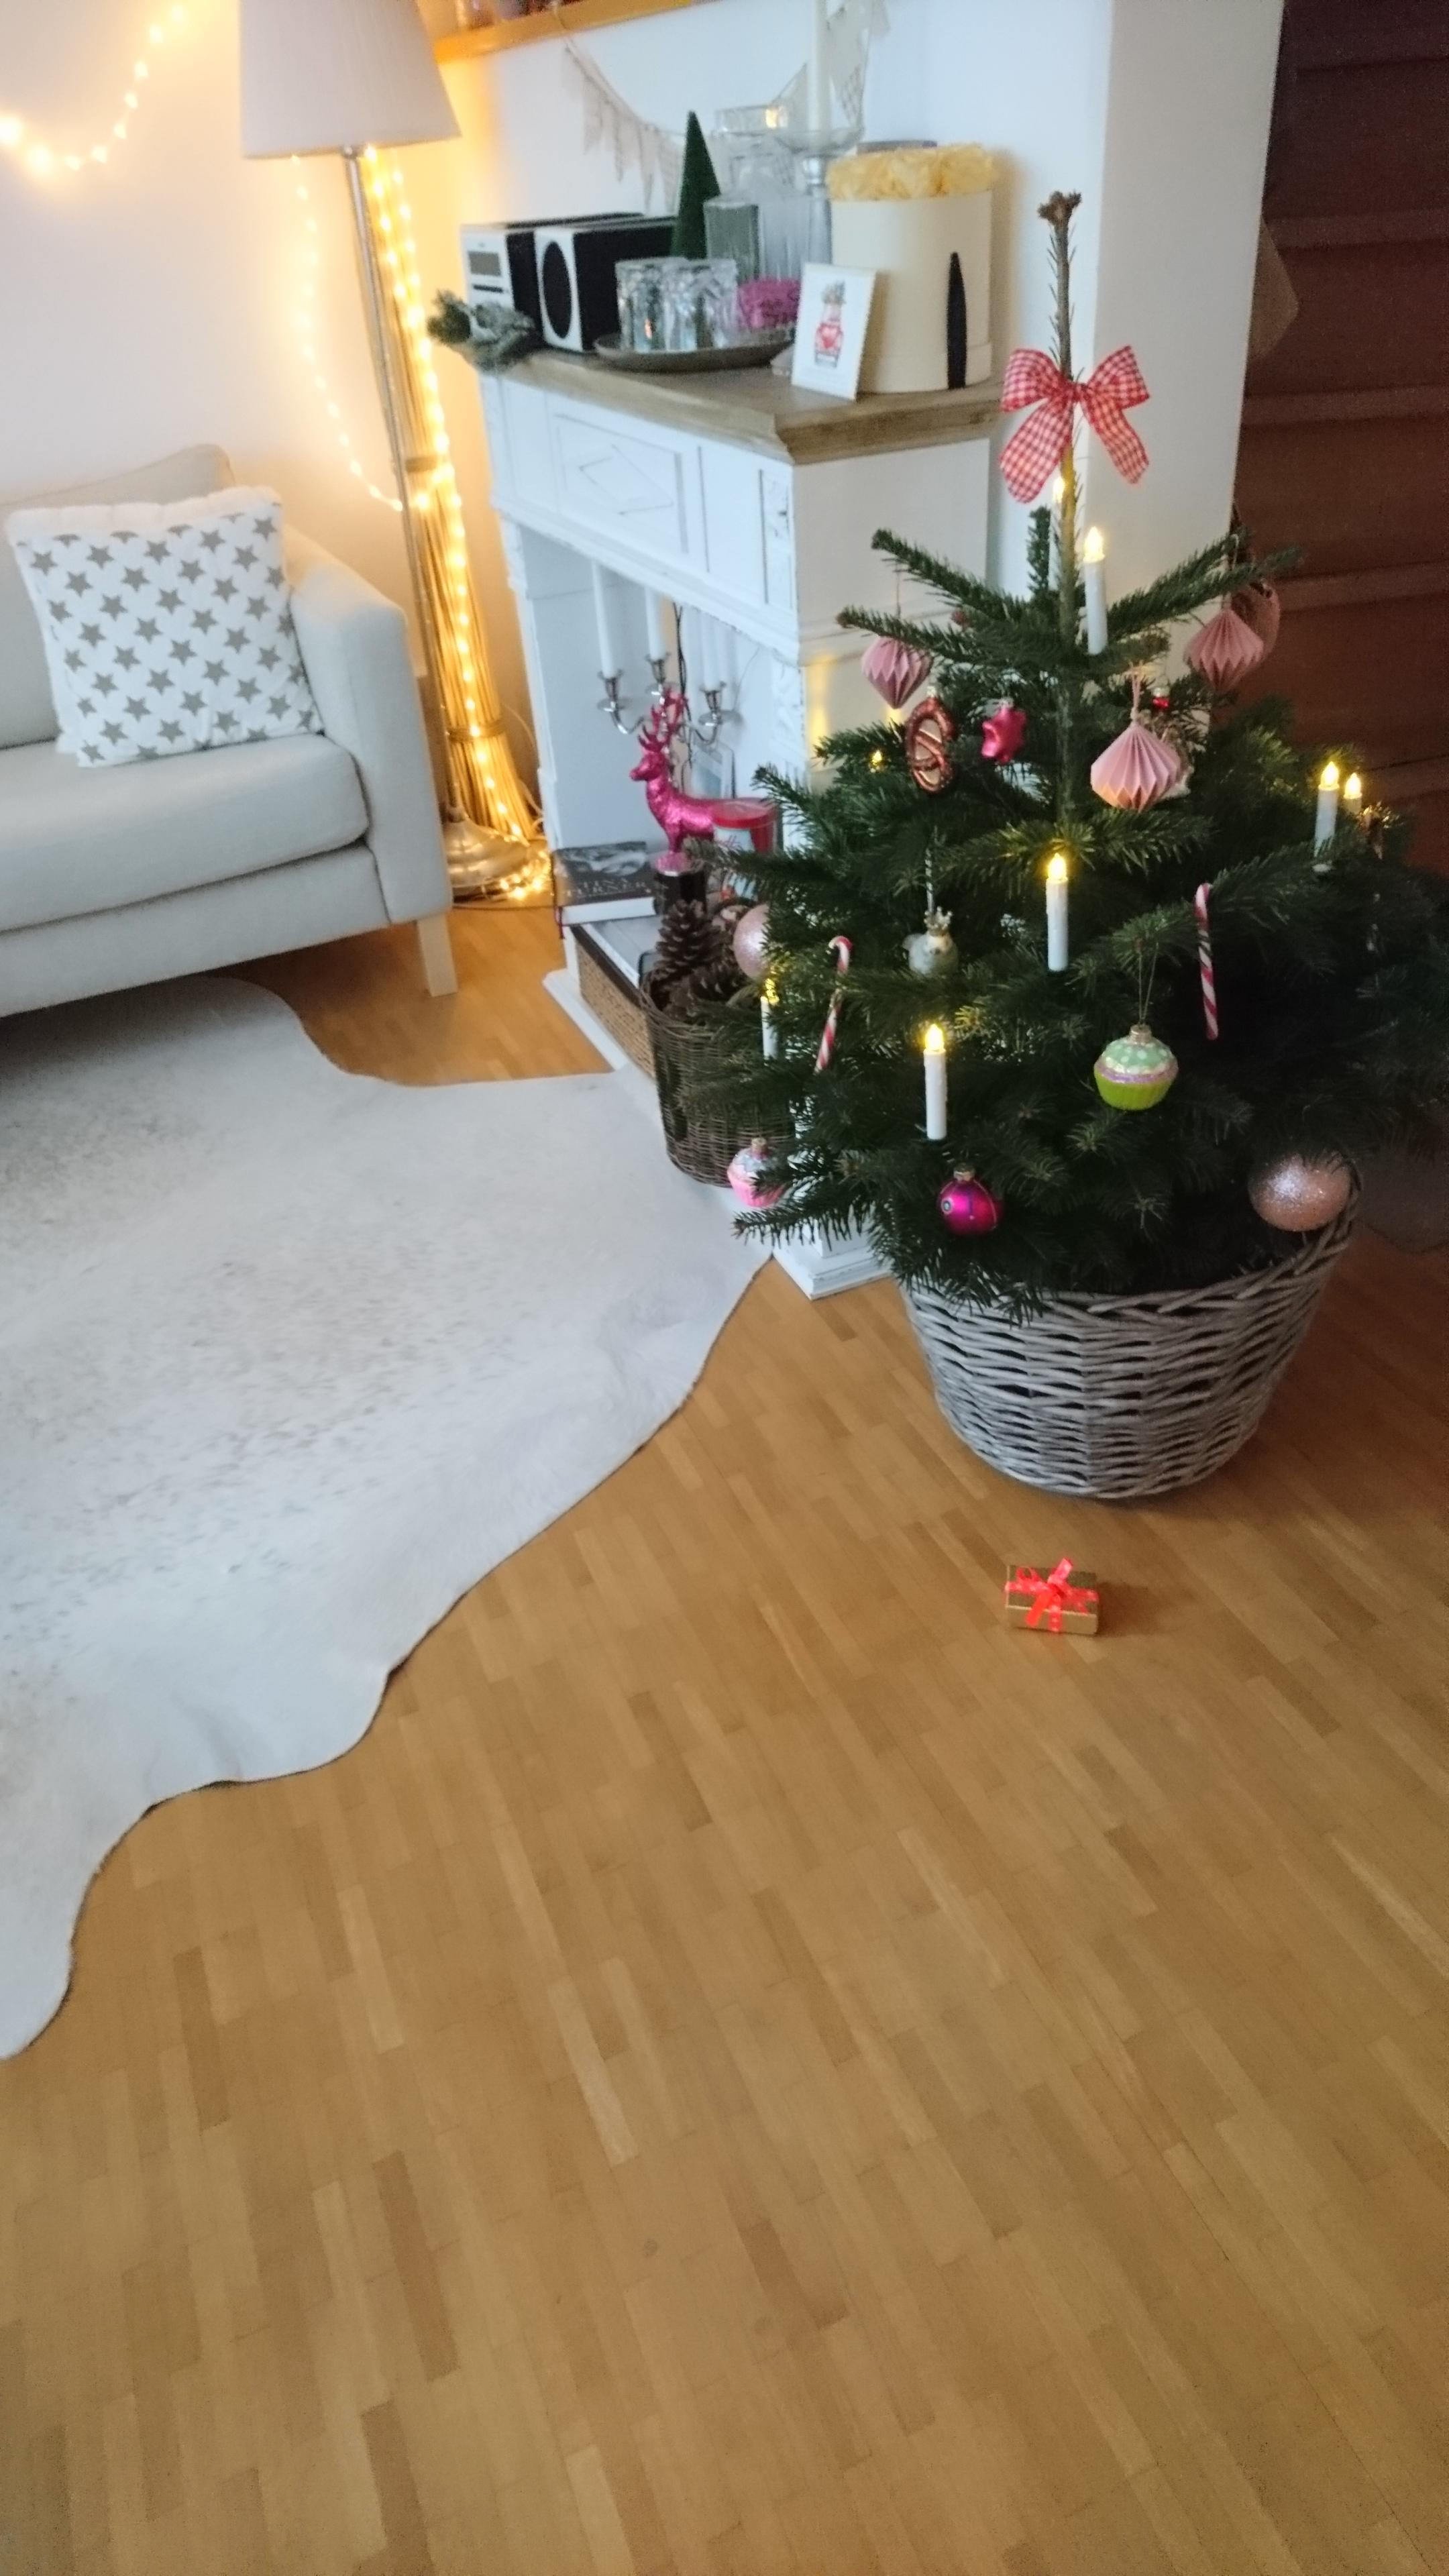 Last christmas i gave you throwback weihnachten weihnachtsbaum xmas  f75e5280 4f01 4360 8c89 374ba478d8f9